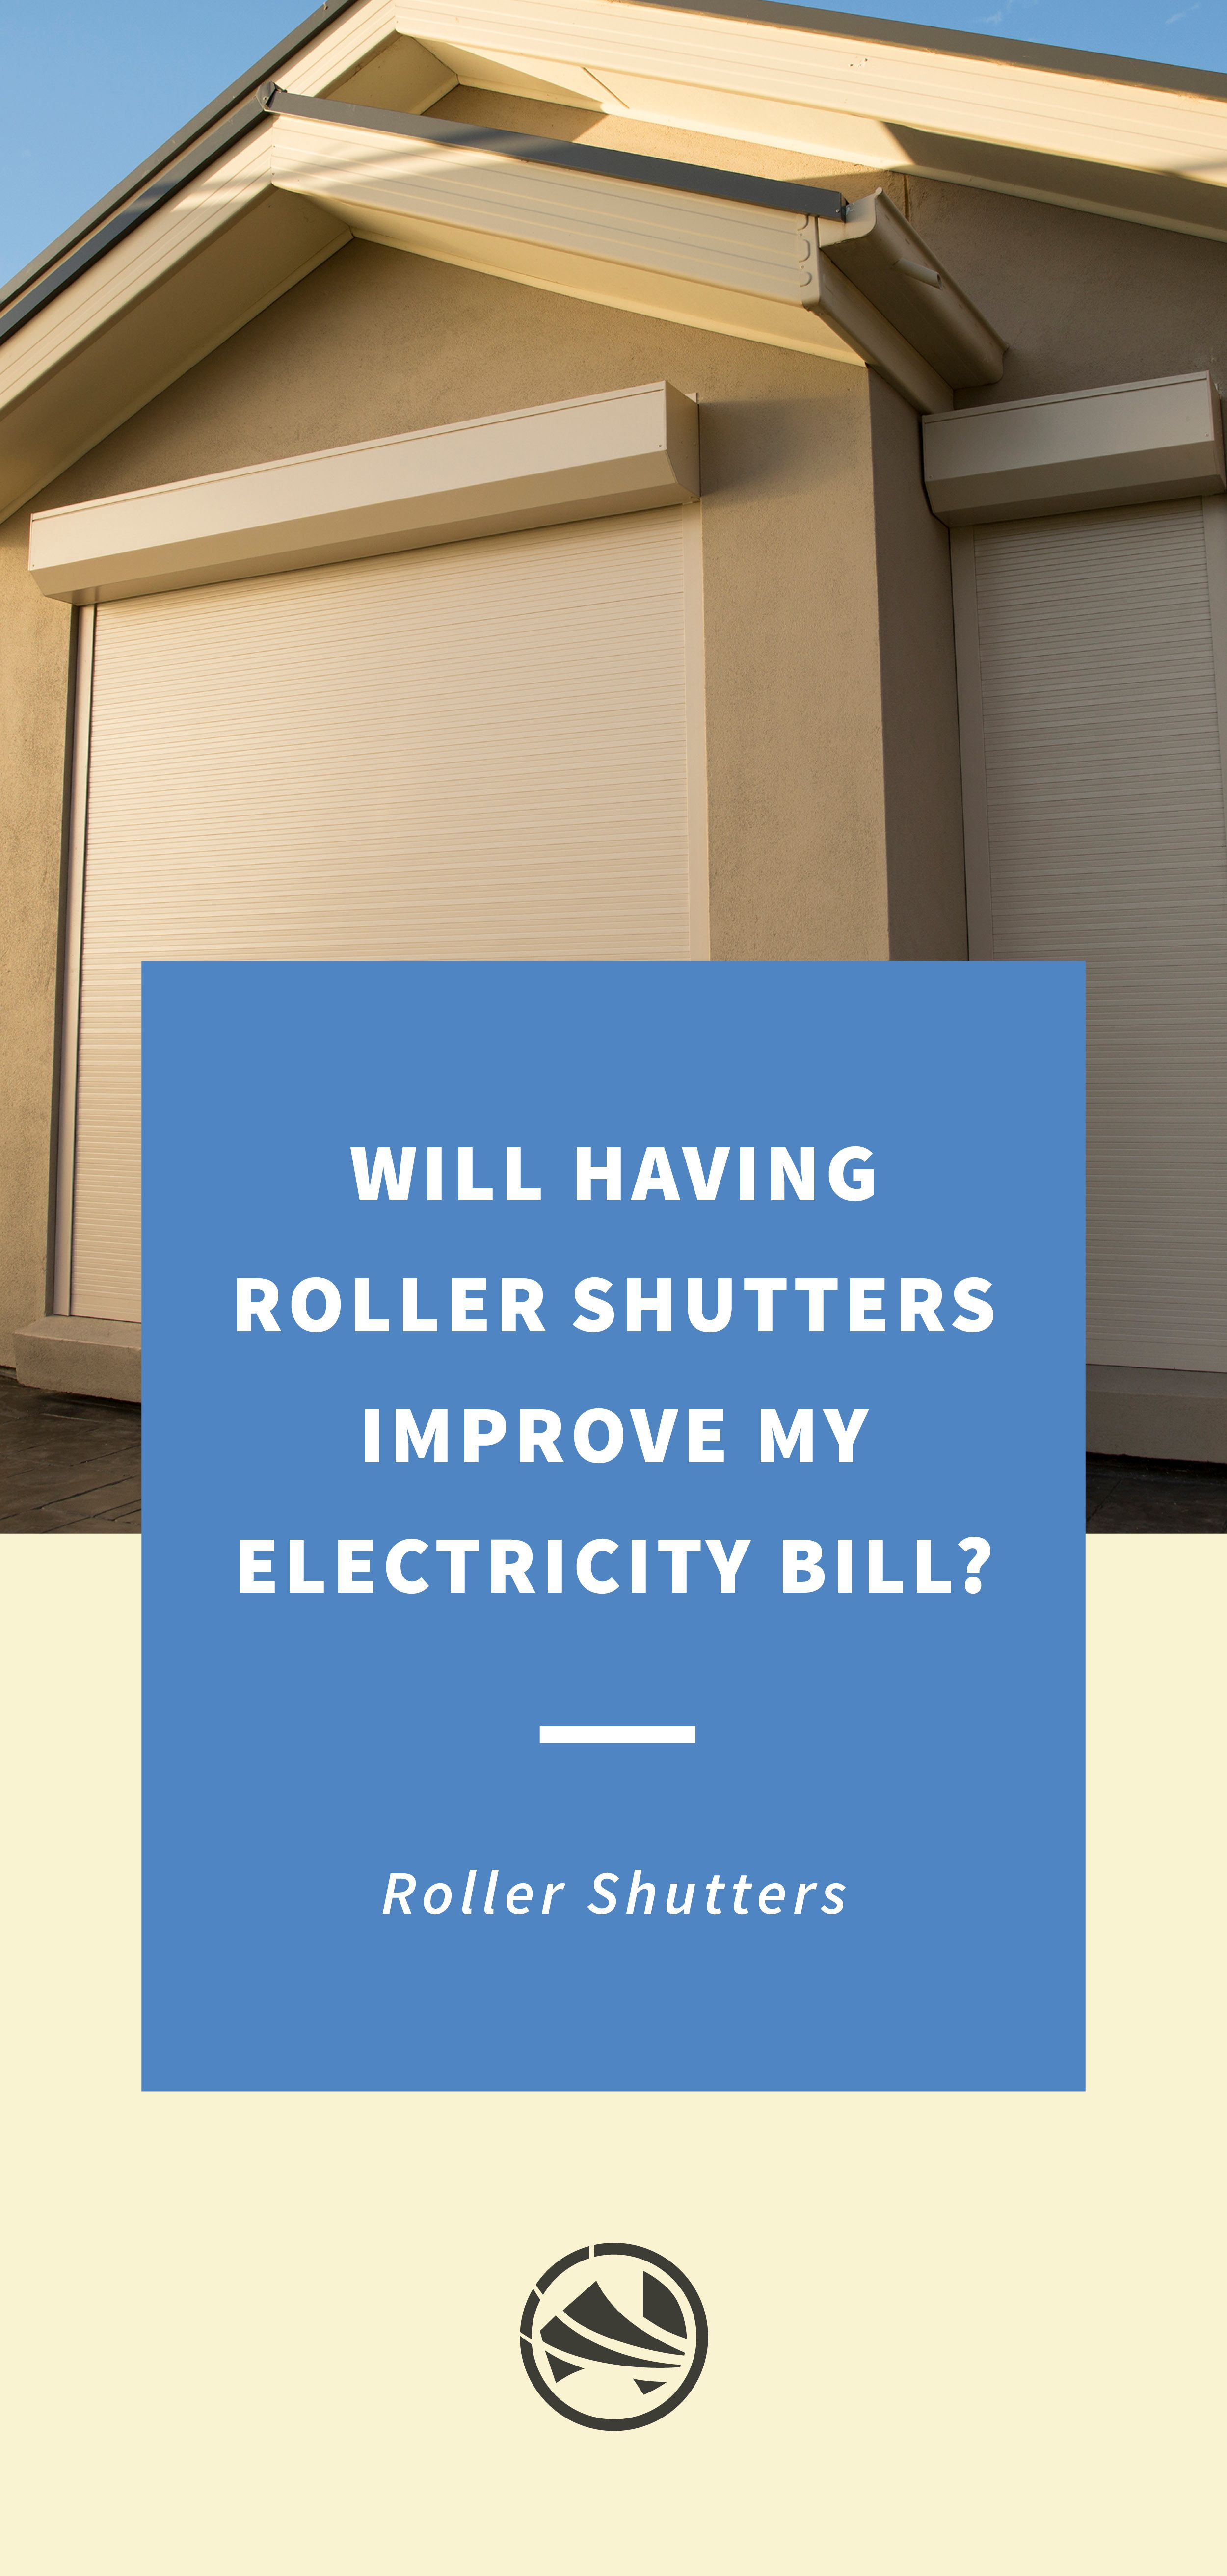 Will Will Roller Shutters Improve My Electricity Bill Roller Shutters Electricity Bill Shutters